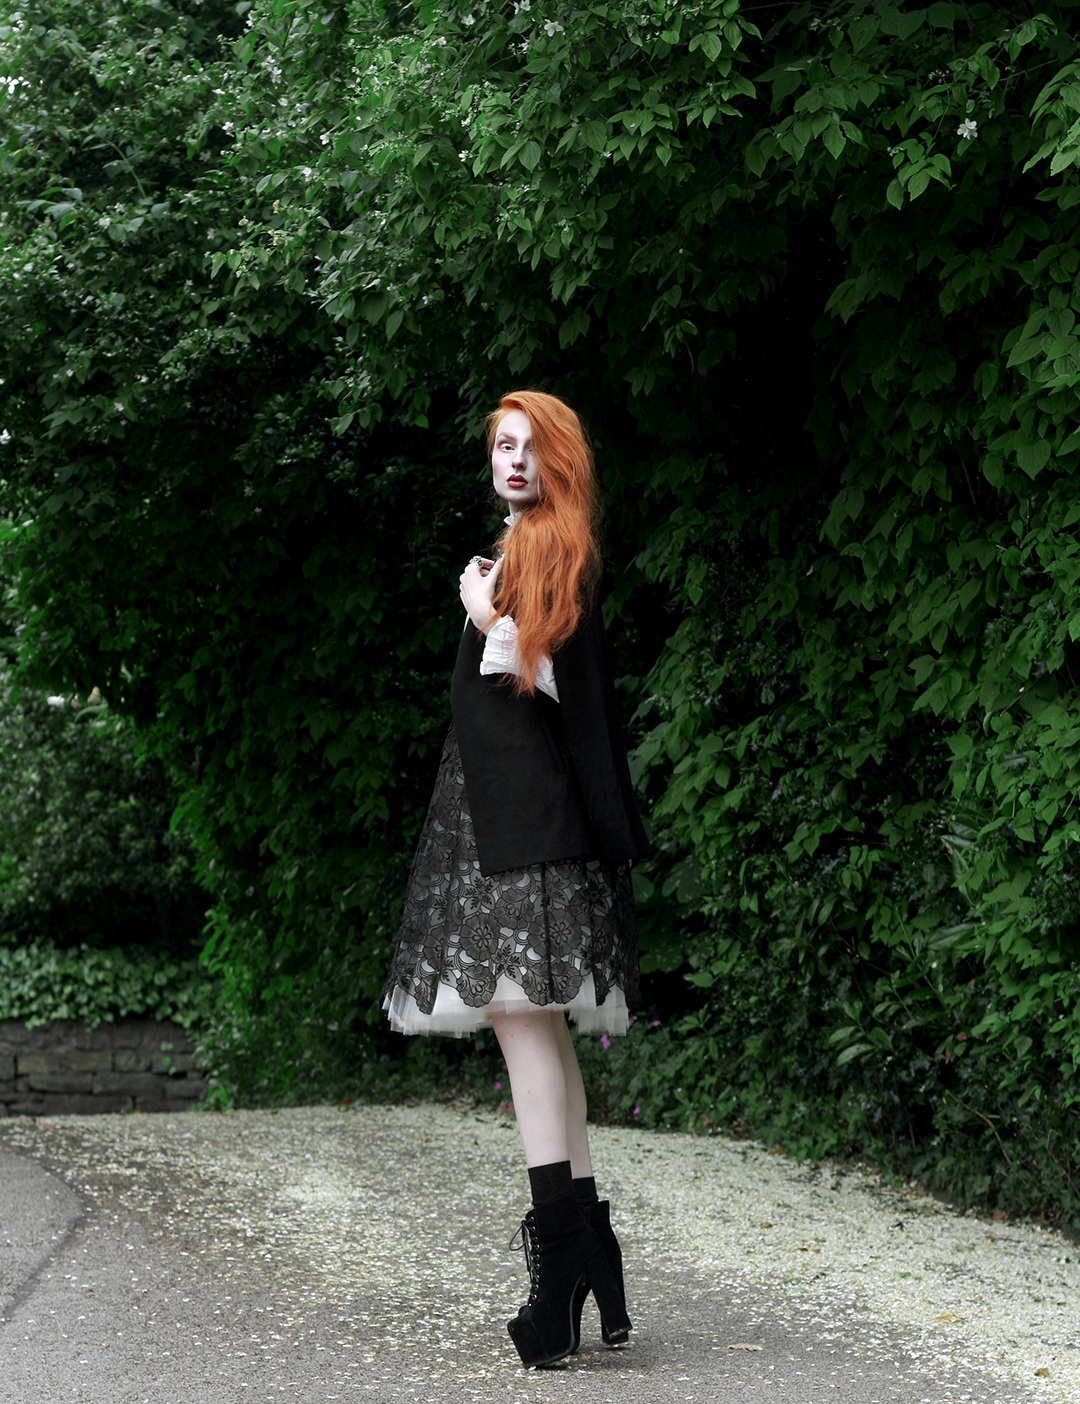 Olivia Emily Pale Outfit with Black Wool Cape, Tulle Midi Skirt & Plain Studios Blouse